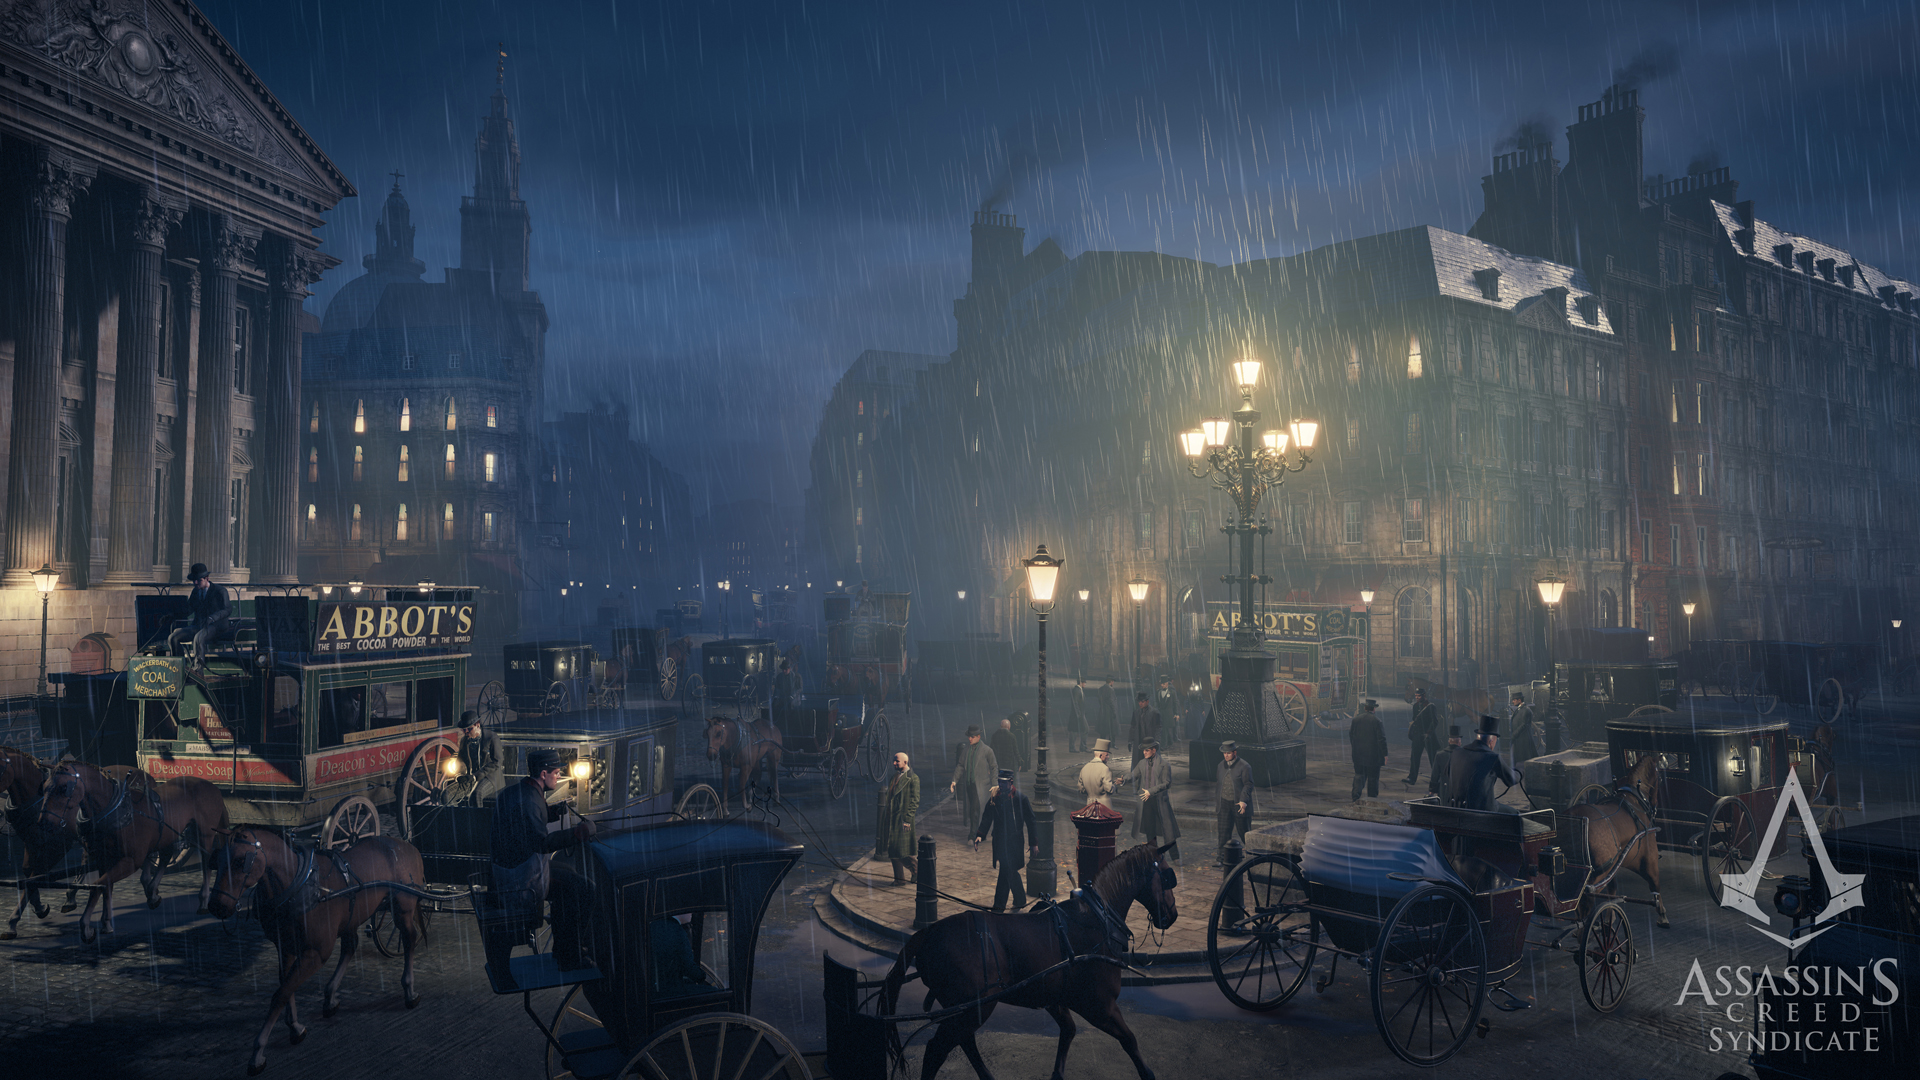 2863633-assassins_creed_syndicate_london_darkandstormy